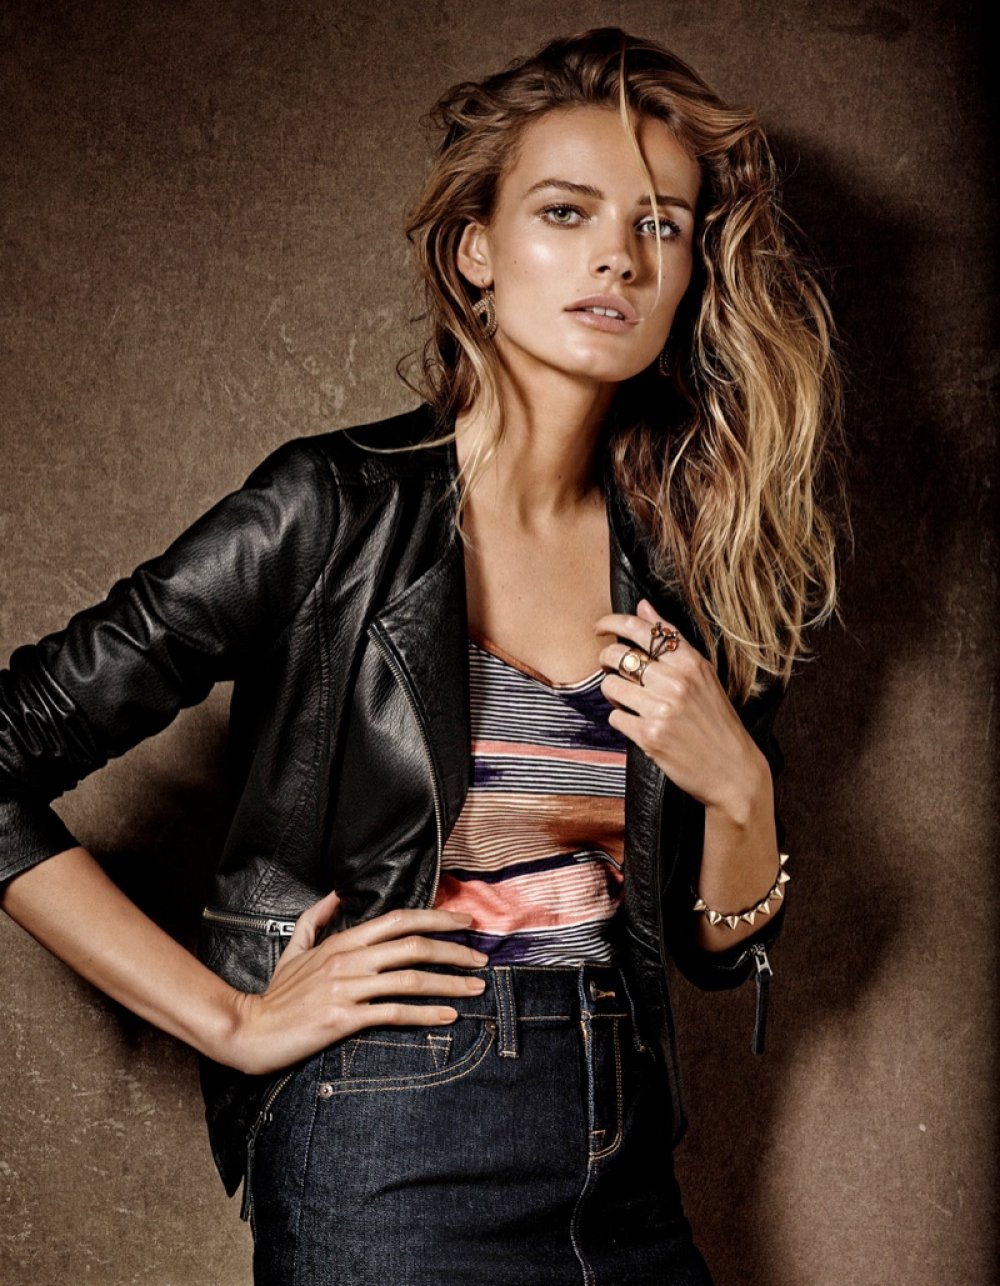 Fall 2013 Campaign for Lucky Brand. Edita is stunning as always styled in relaxed denim combinations accompanied by knitted sweaters, leather jackets